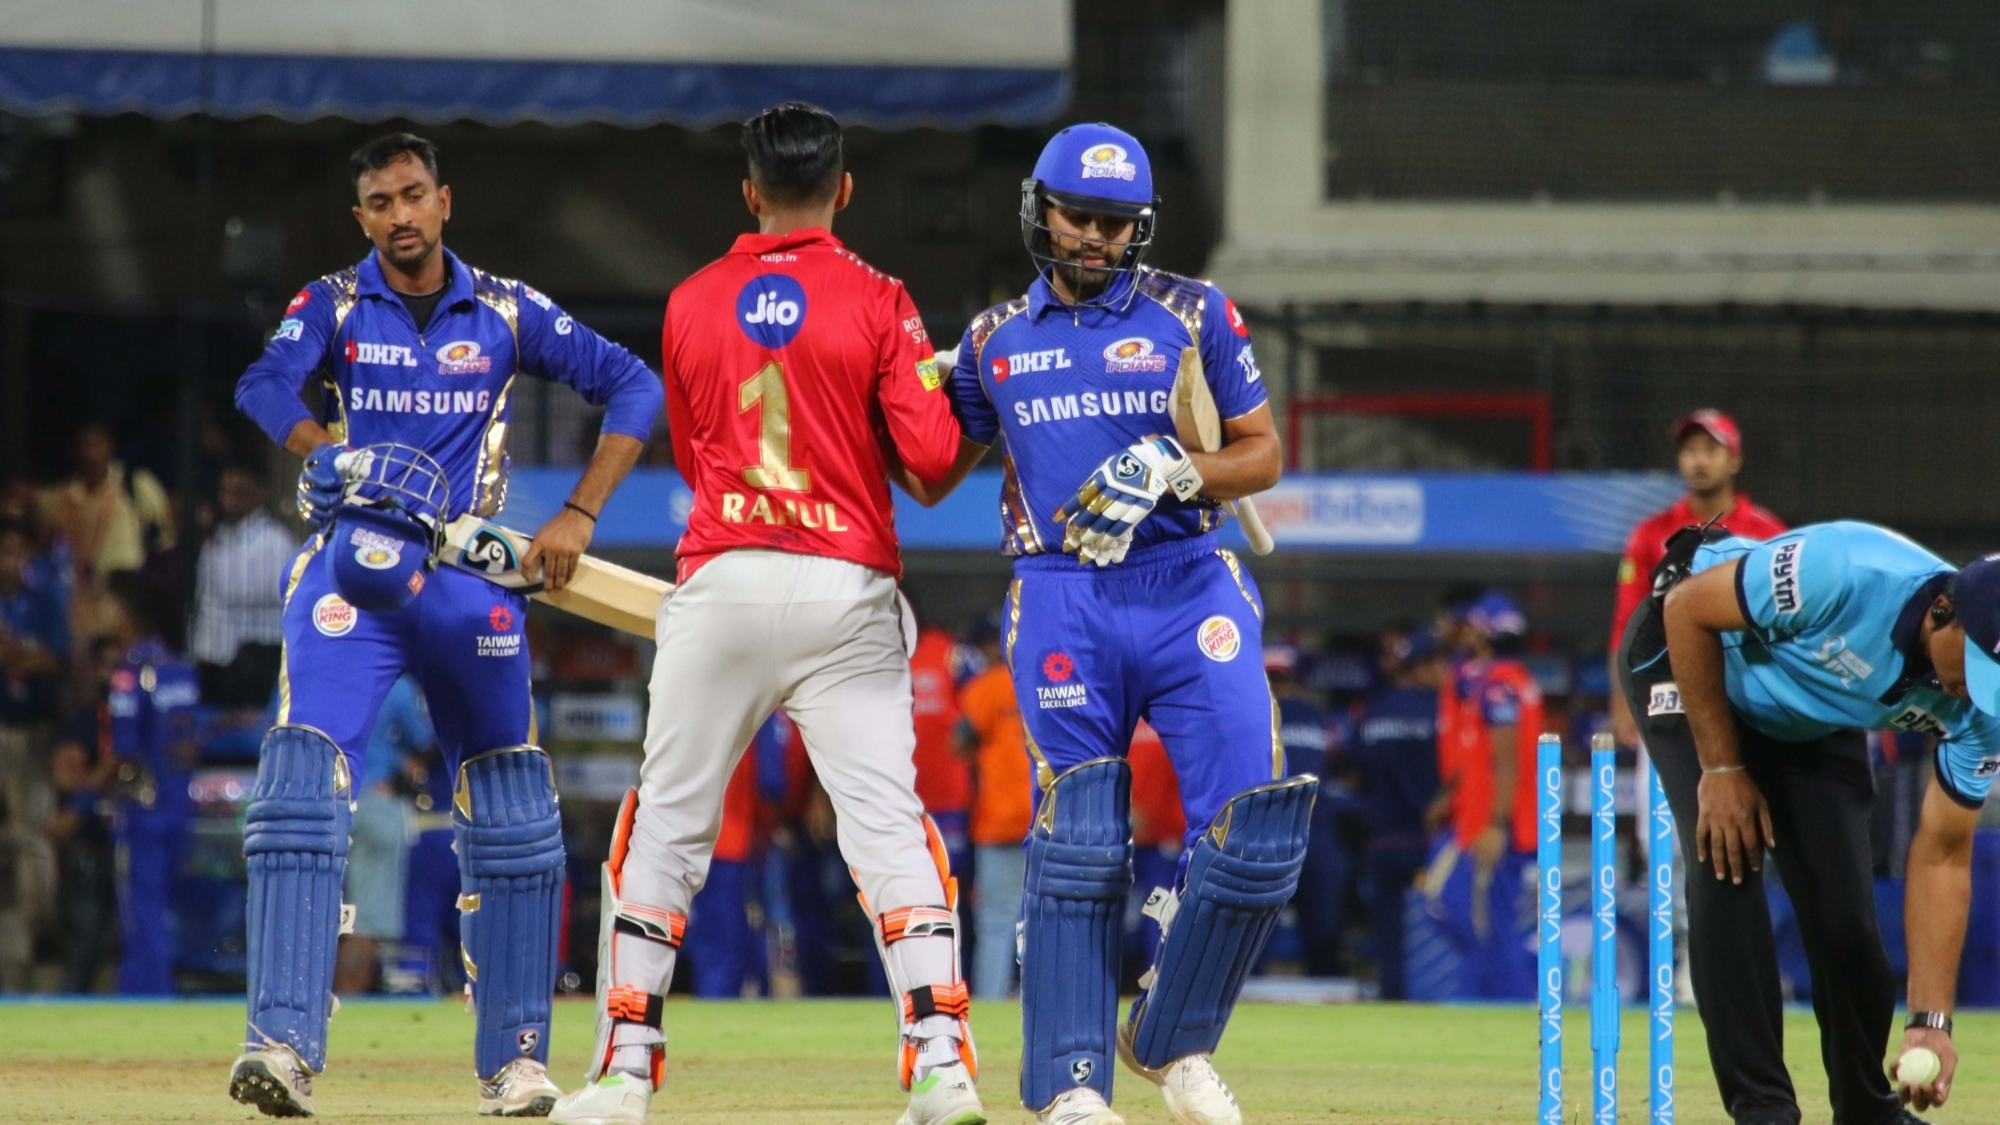 IPL 2018: Rohit Sharma relieved after Mumbai Indians' collective effort against KXIP